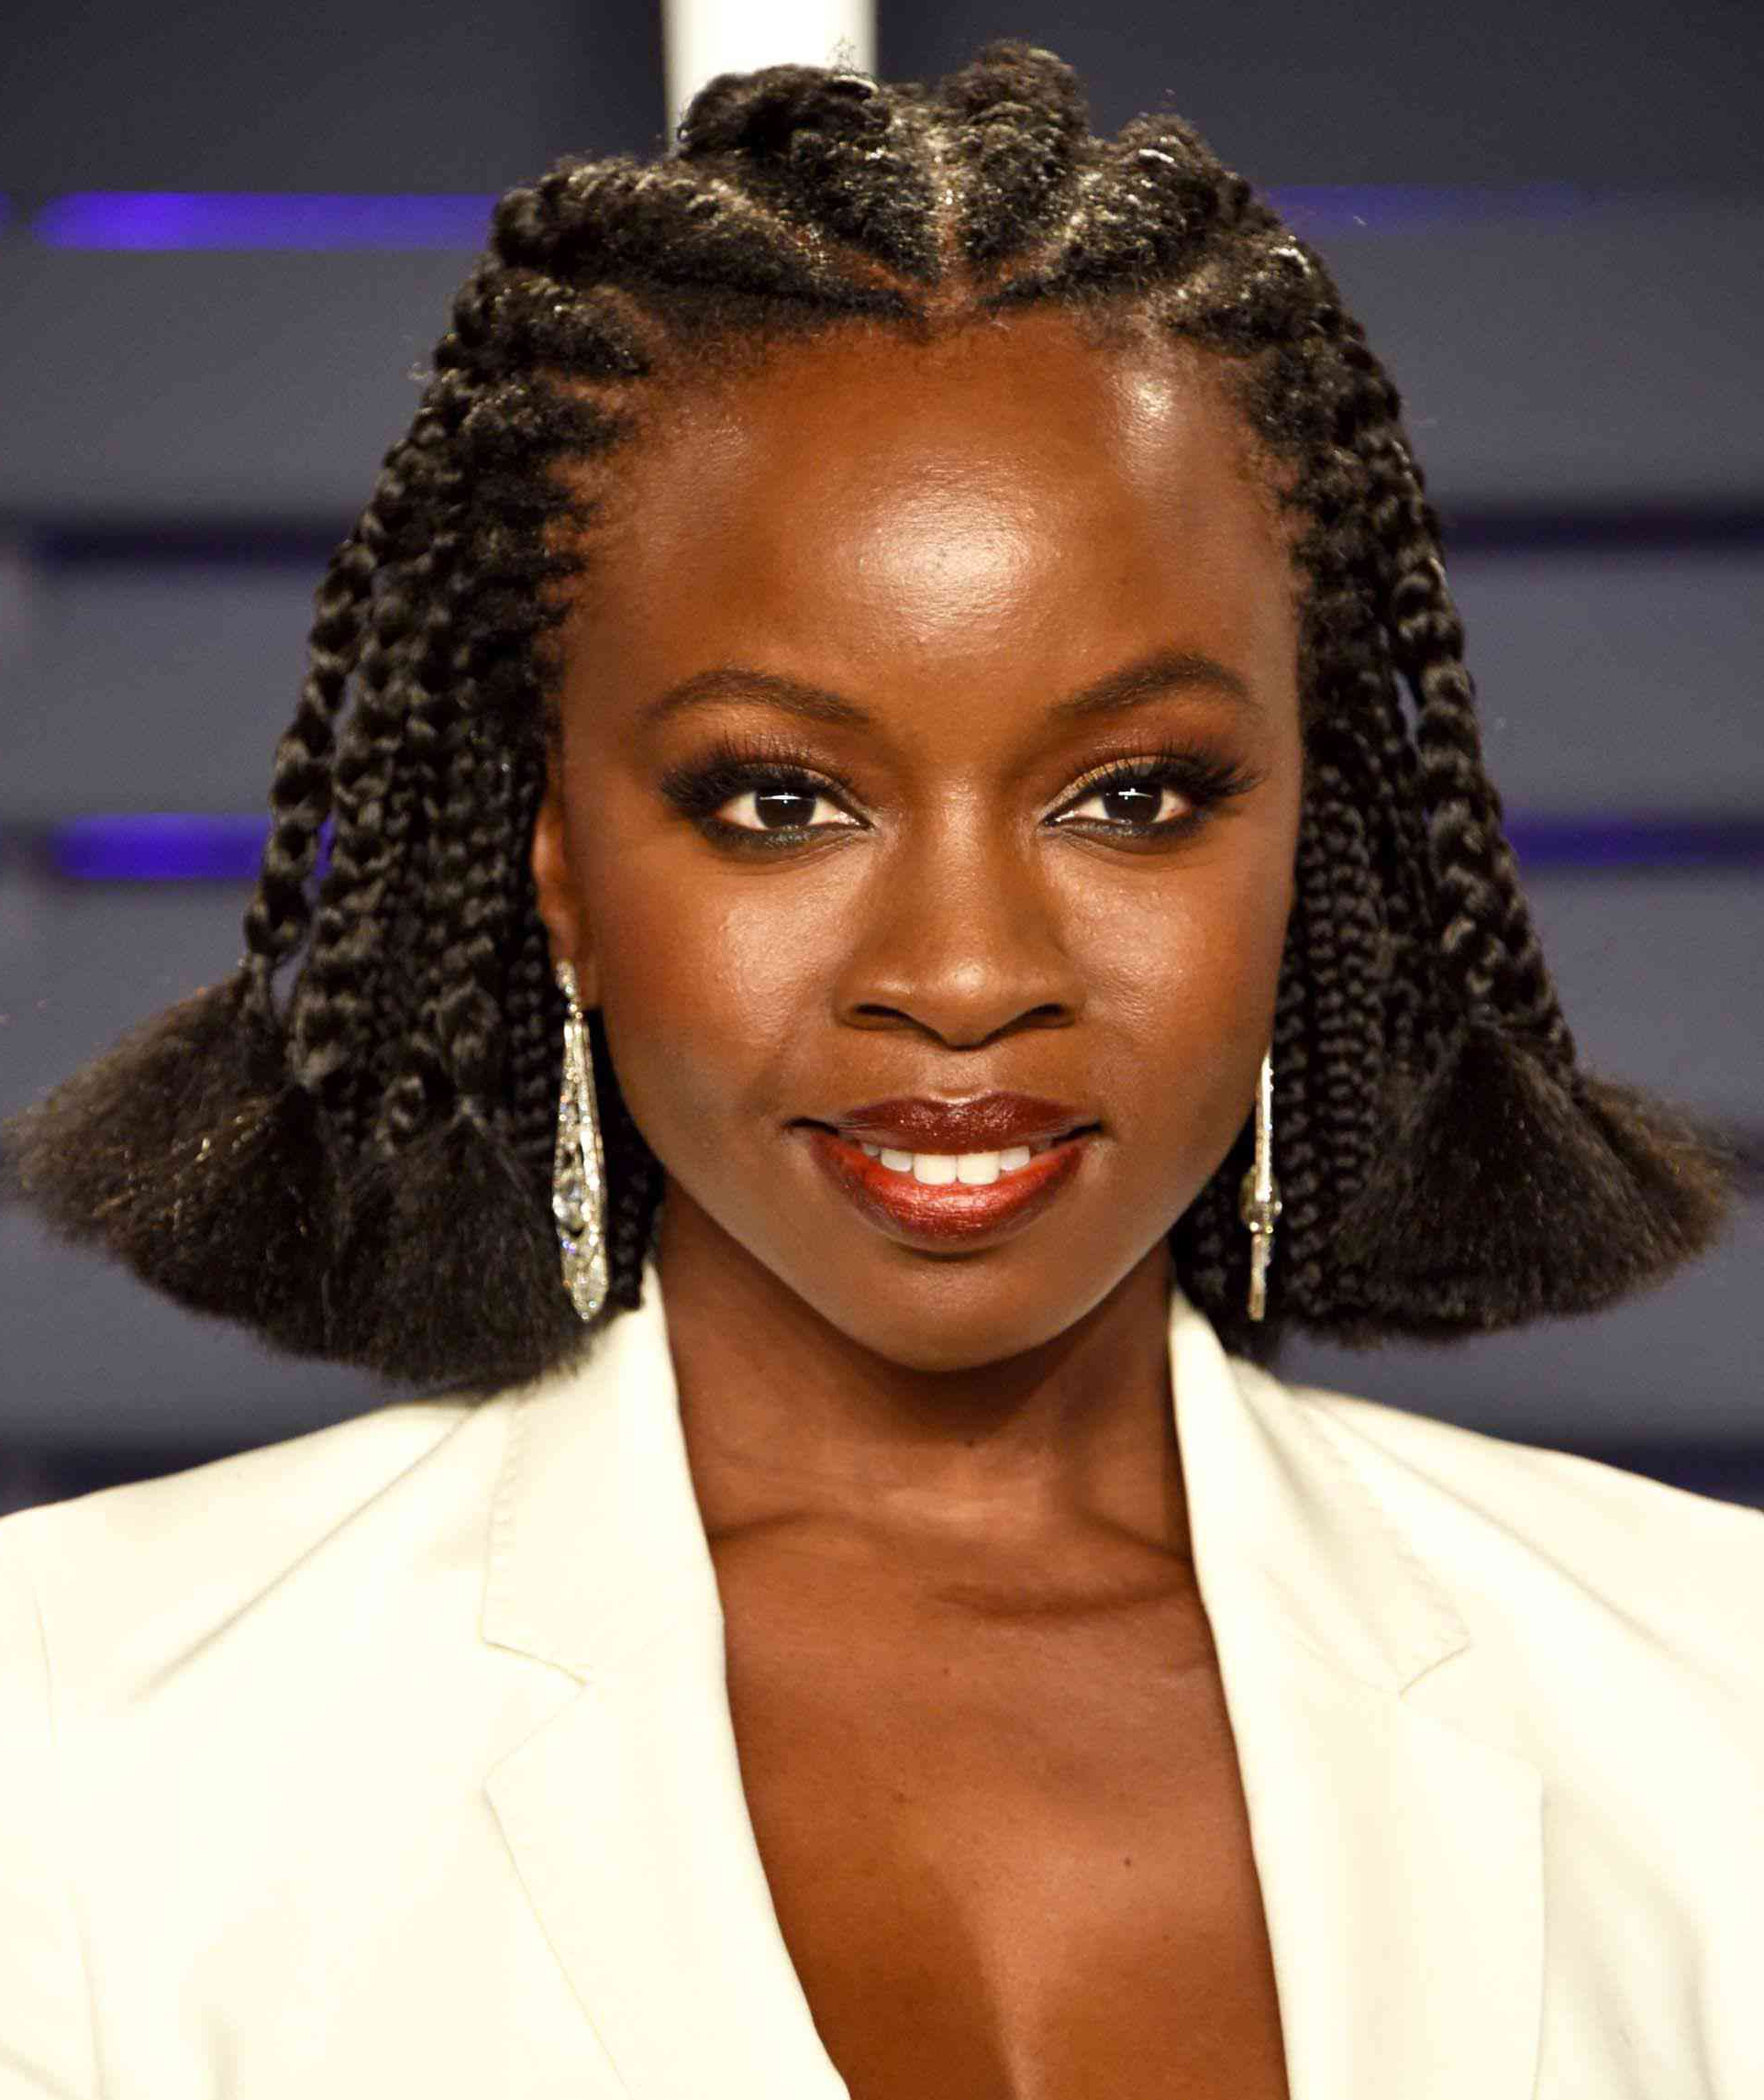 20 Stunning Braided Hairstyles For Natural Hair With Regard To Well Known Angled Braided Hairstyles On Crimped Hair (View 6 of 20)